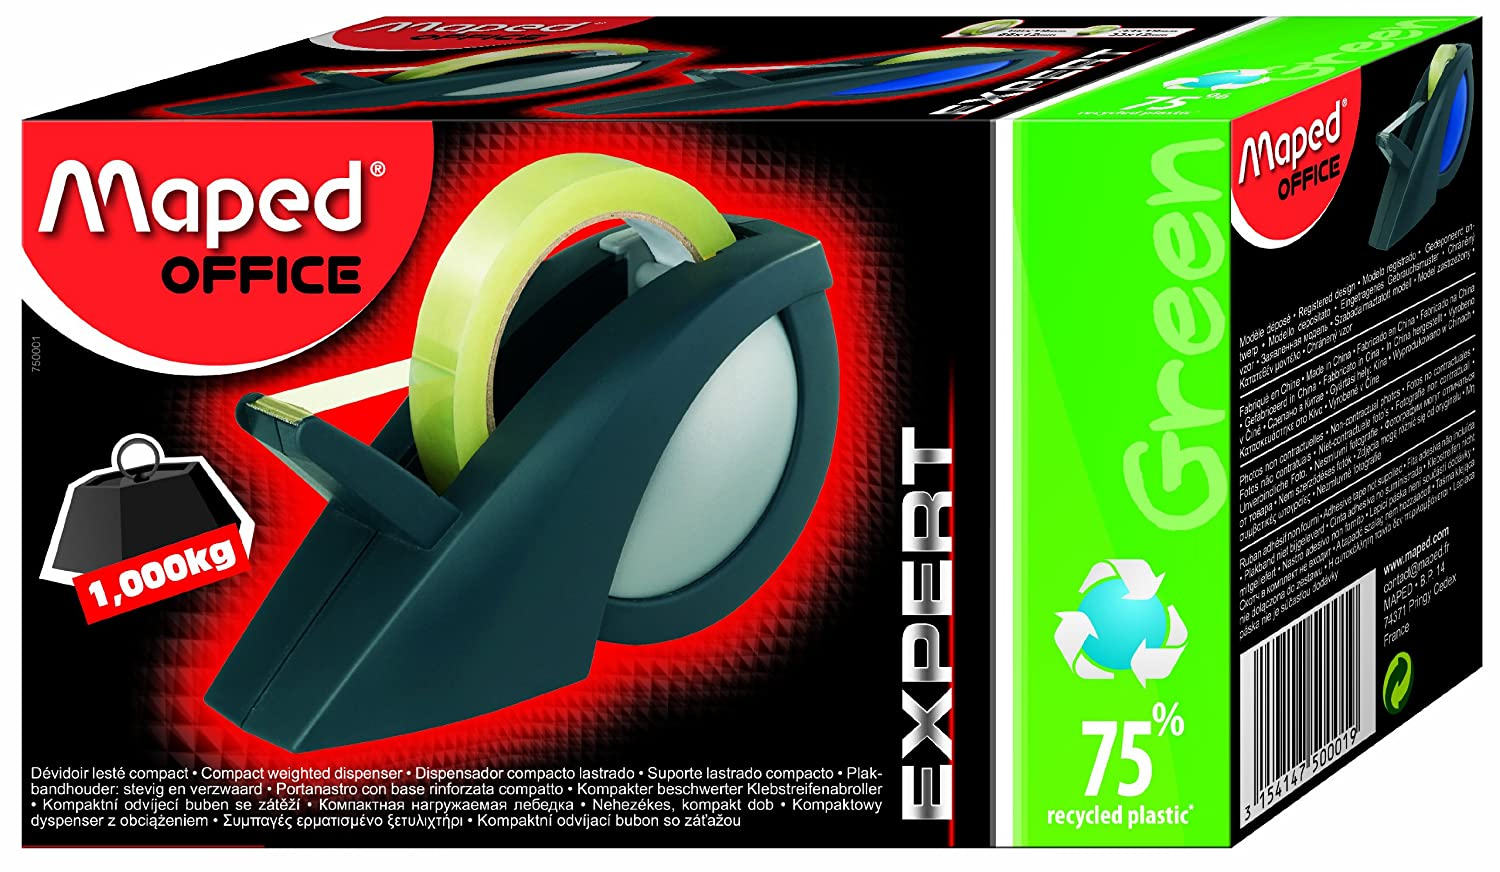 Amazon.com : Maped Compact Pro Weighted Tape Dispenser (750001) : Office Products